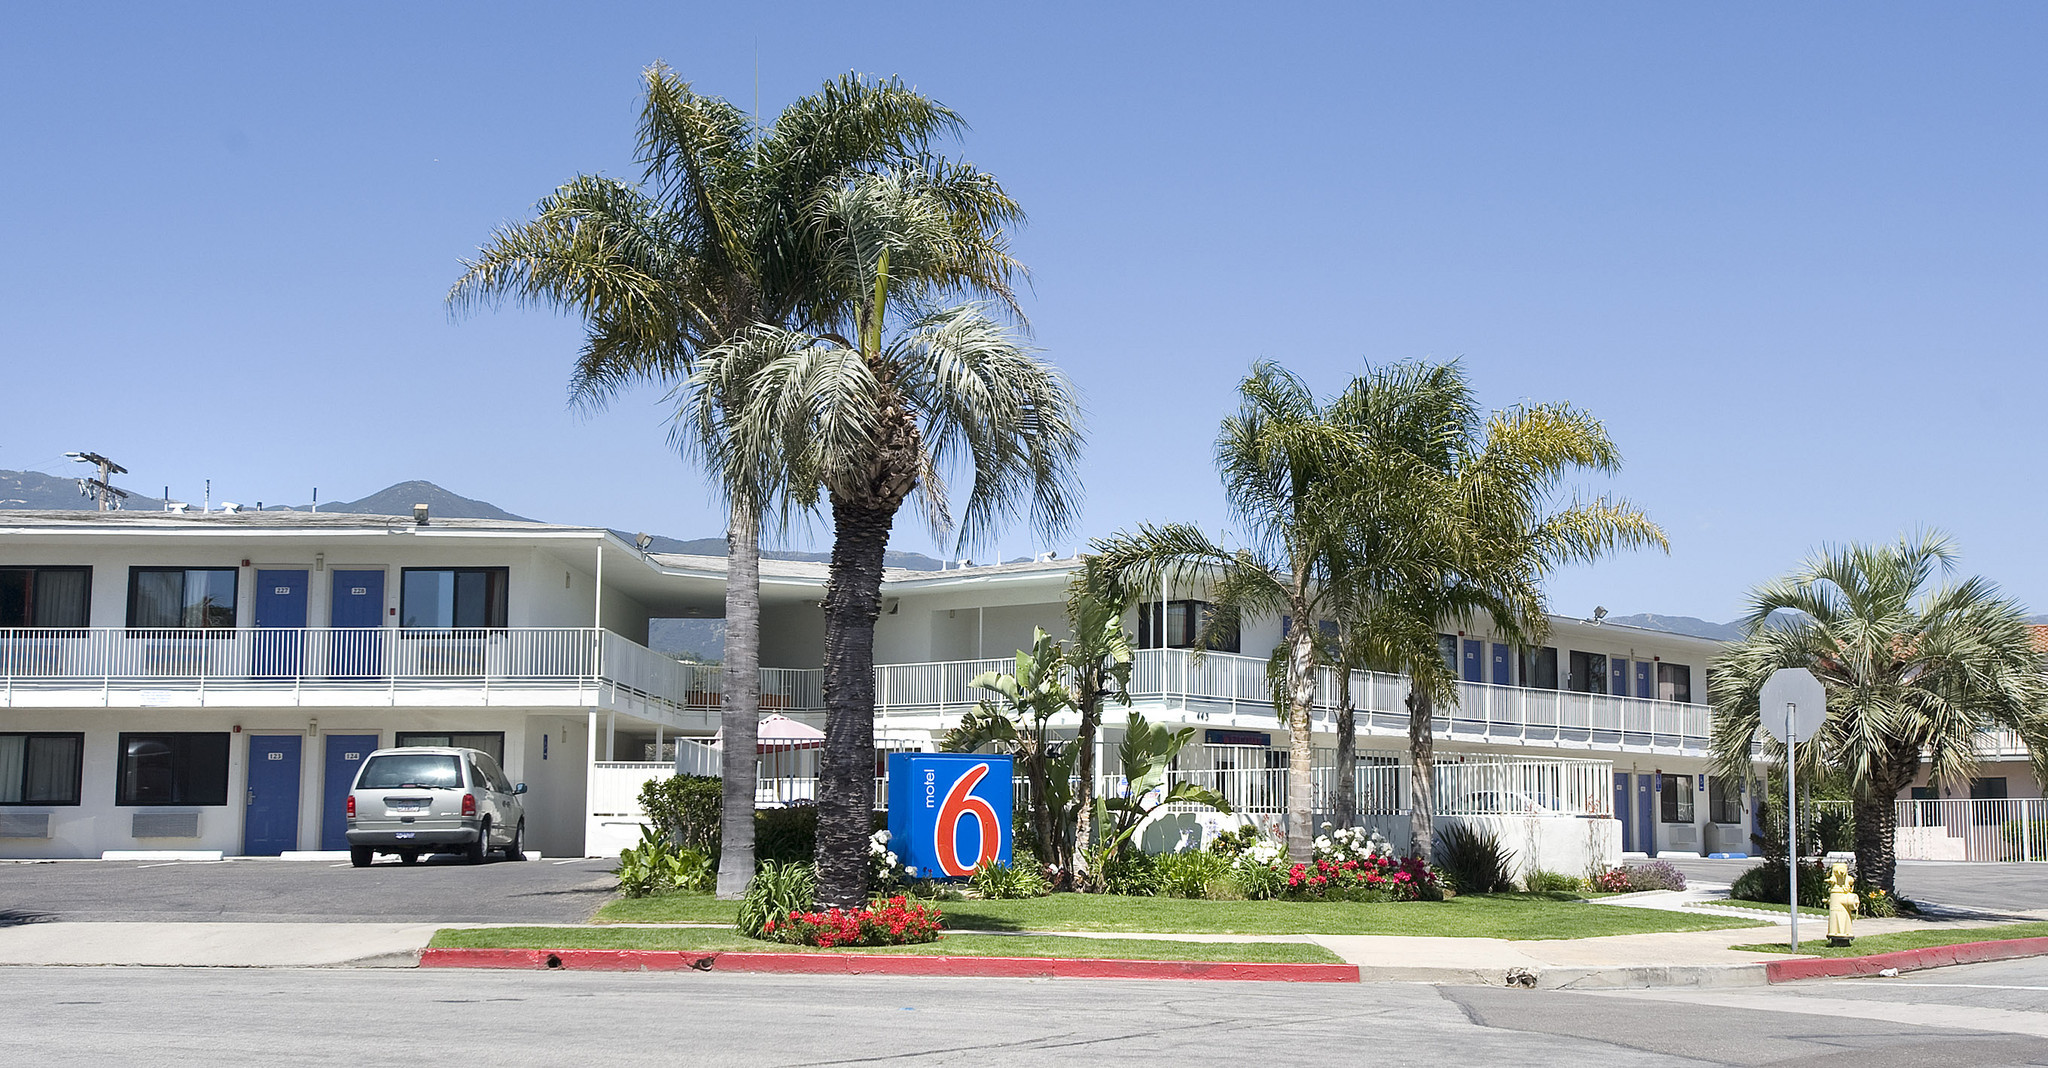 This is the very first Motel Six which opened its doors in 1962 one block from the beach in Santa Barbara. The national chain has been a classic budget brand since its inception. At that time it offered rooms for $6 a night.